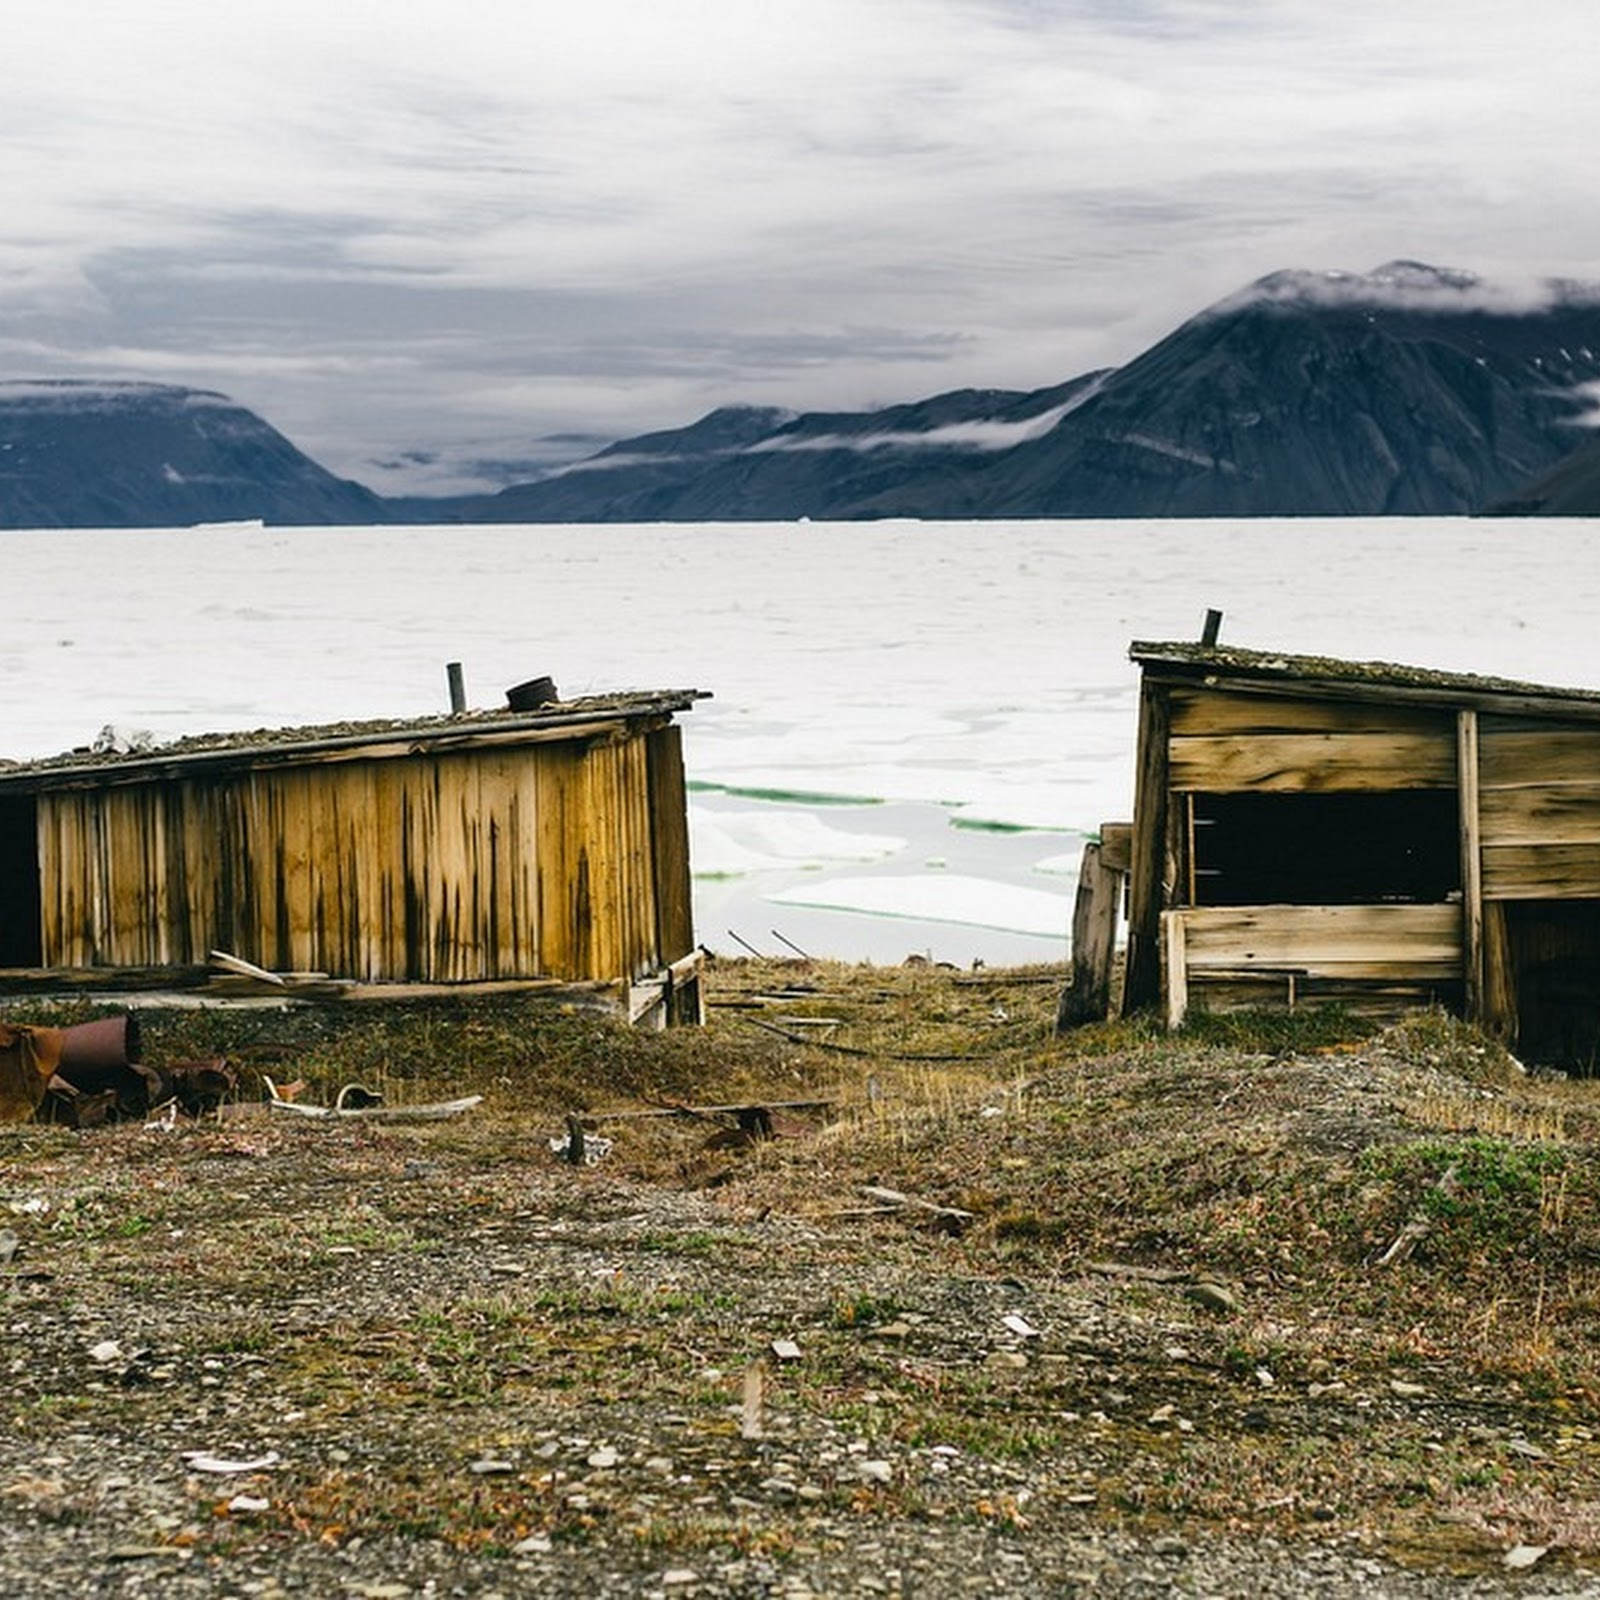 Fort Conger: Robert Peary's Arctic Hut